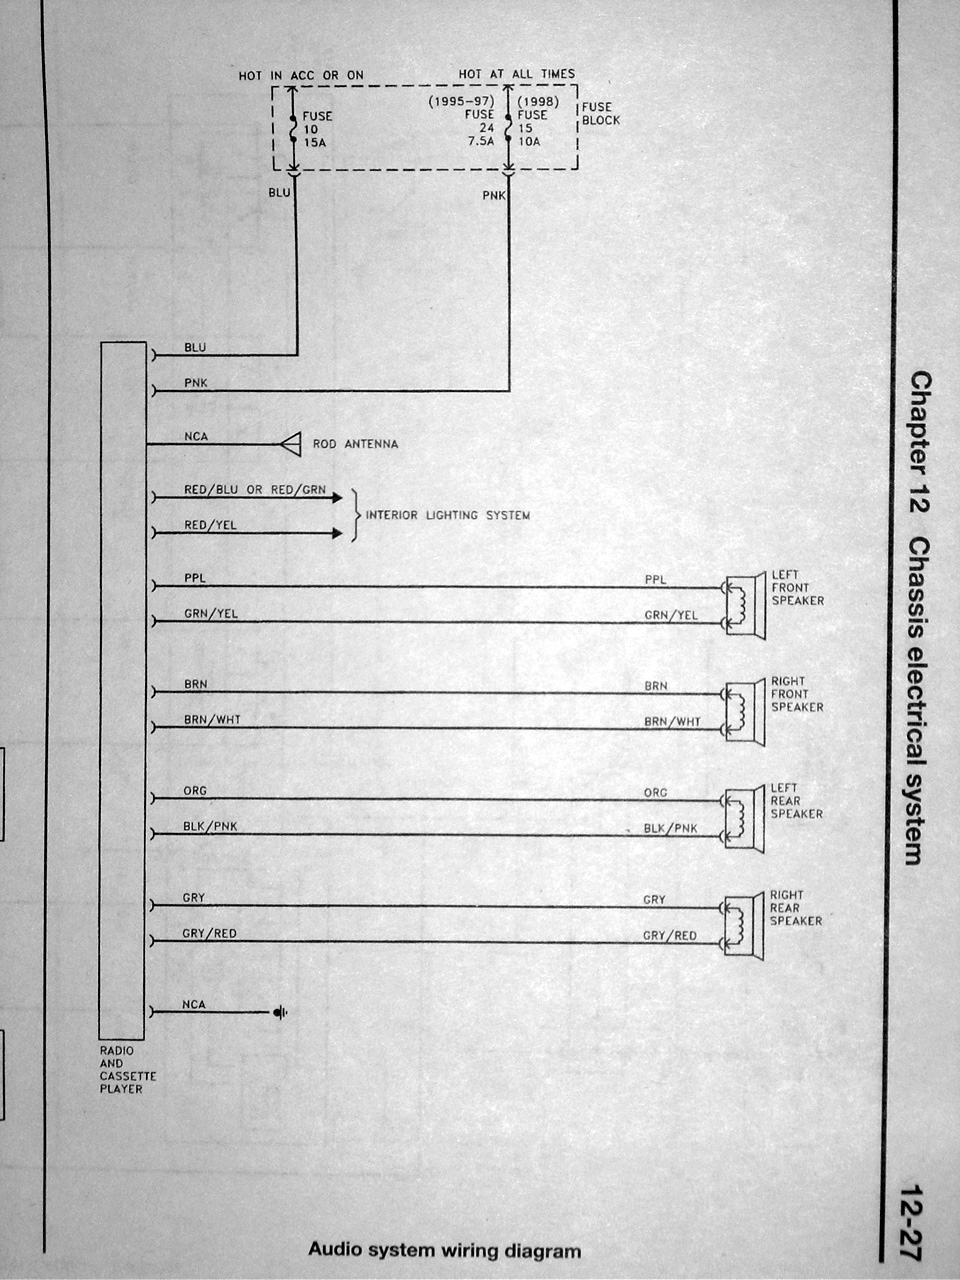 DSC01849 wiring diagram thread *useful info* nissan forum 2002 Nissan Frontier Fuse Box Diagram at sewacar.co